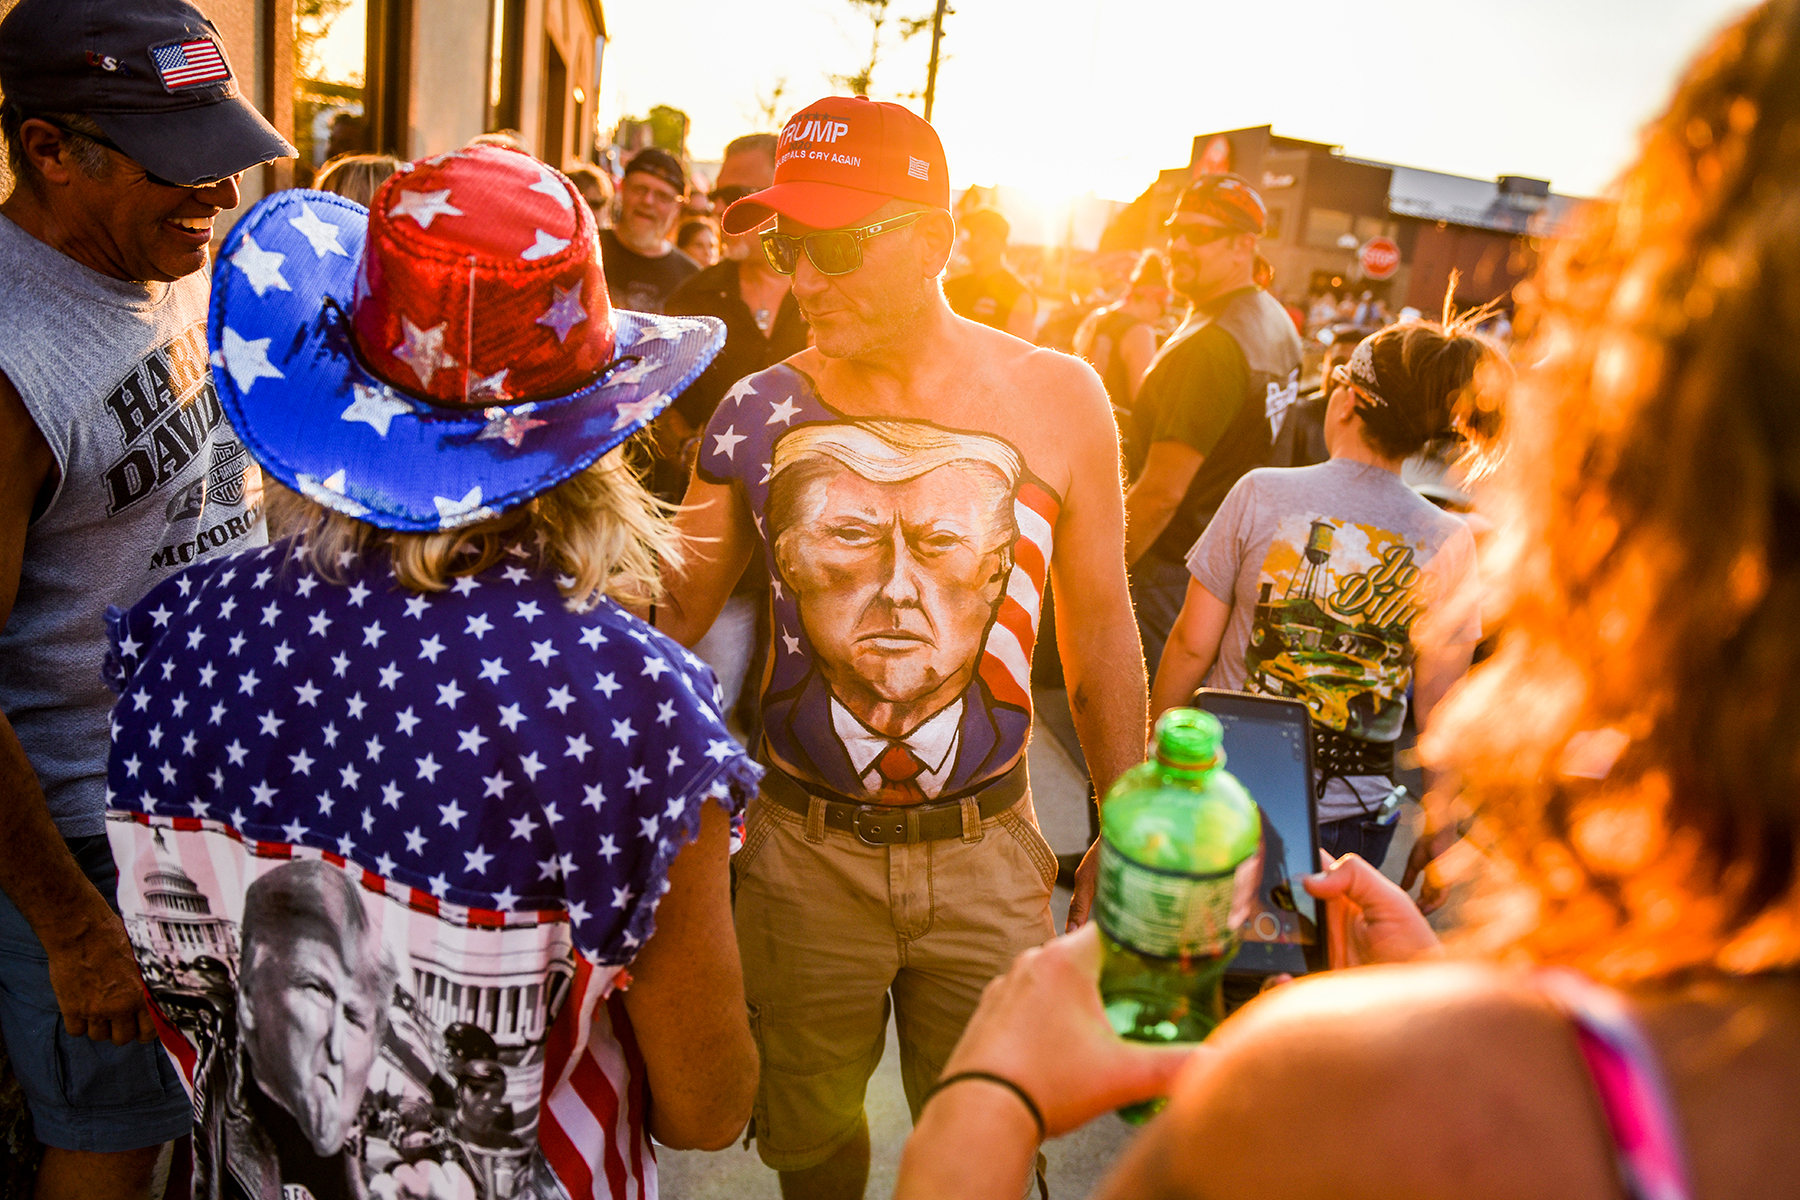 STURGIS, SD - AUGUST 07: Johne Riley walks down Main Street showing off his chest painted with a portrait of President Donald Trump during the 80th Annual Sturgis Motorcycle Rally on August 7, 2020 in Sturgis, South Dakota. While the rally usually attracts around 500,000 people, officials estimate that more than 250,000 people may still show up to this year's festival despite the coronavirus pandemic. (Photo by Michael Ciaglo/Getty Images)